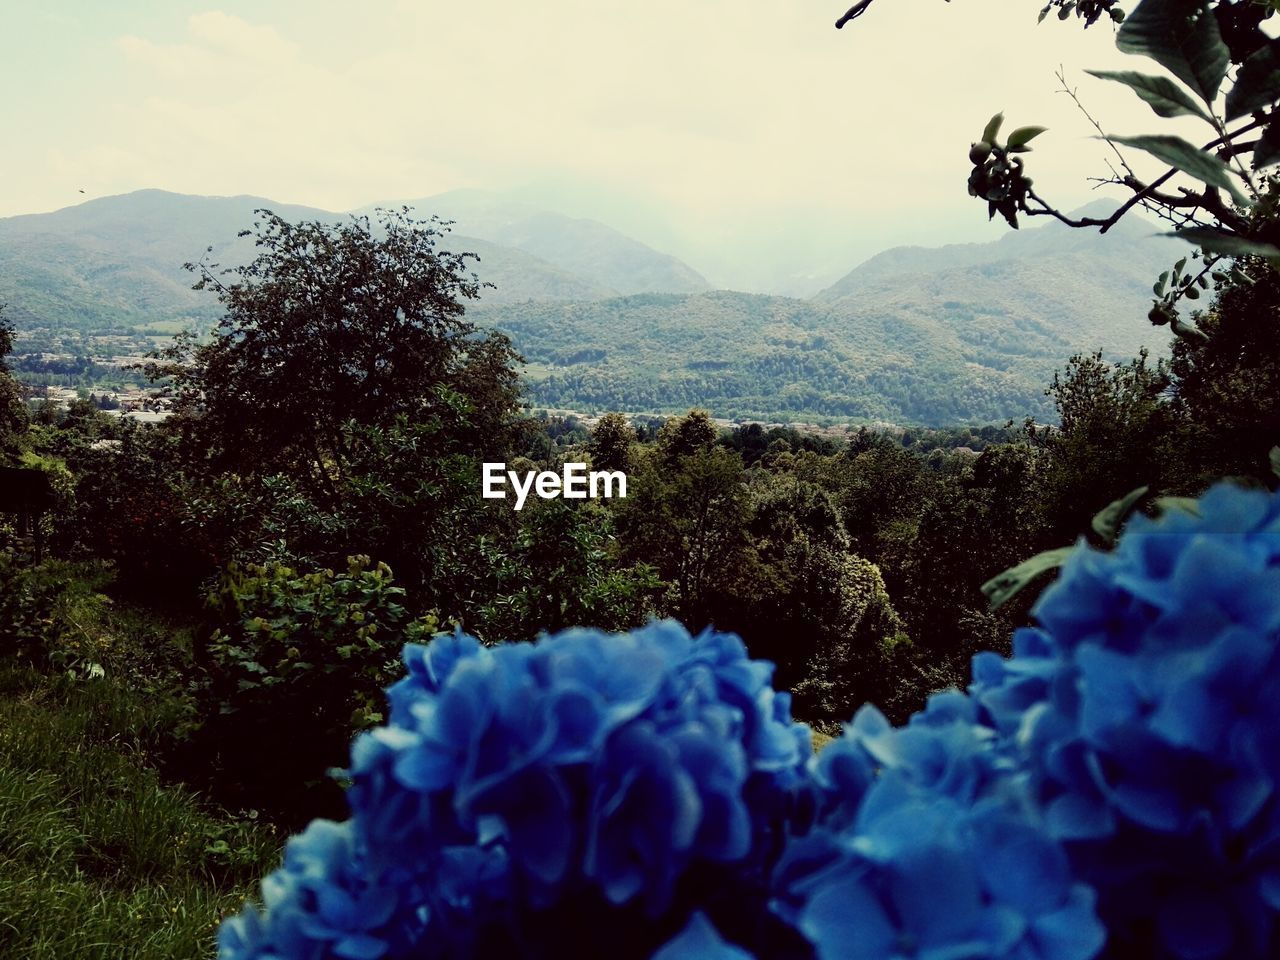 plant, beauty in nature, flowering plant, flower, growth, tree, nature, mountain, sky, day, freshness, blue, no people, close-up, fragility, tranquility, vulnerability, scenics - nature, outdoors, tranquil scene, flower head